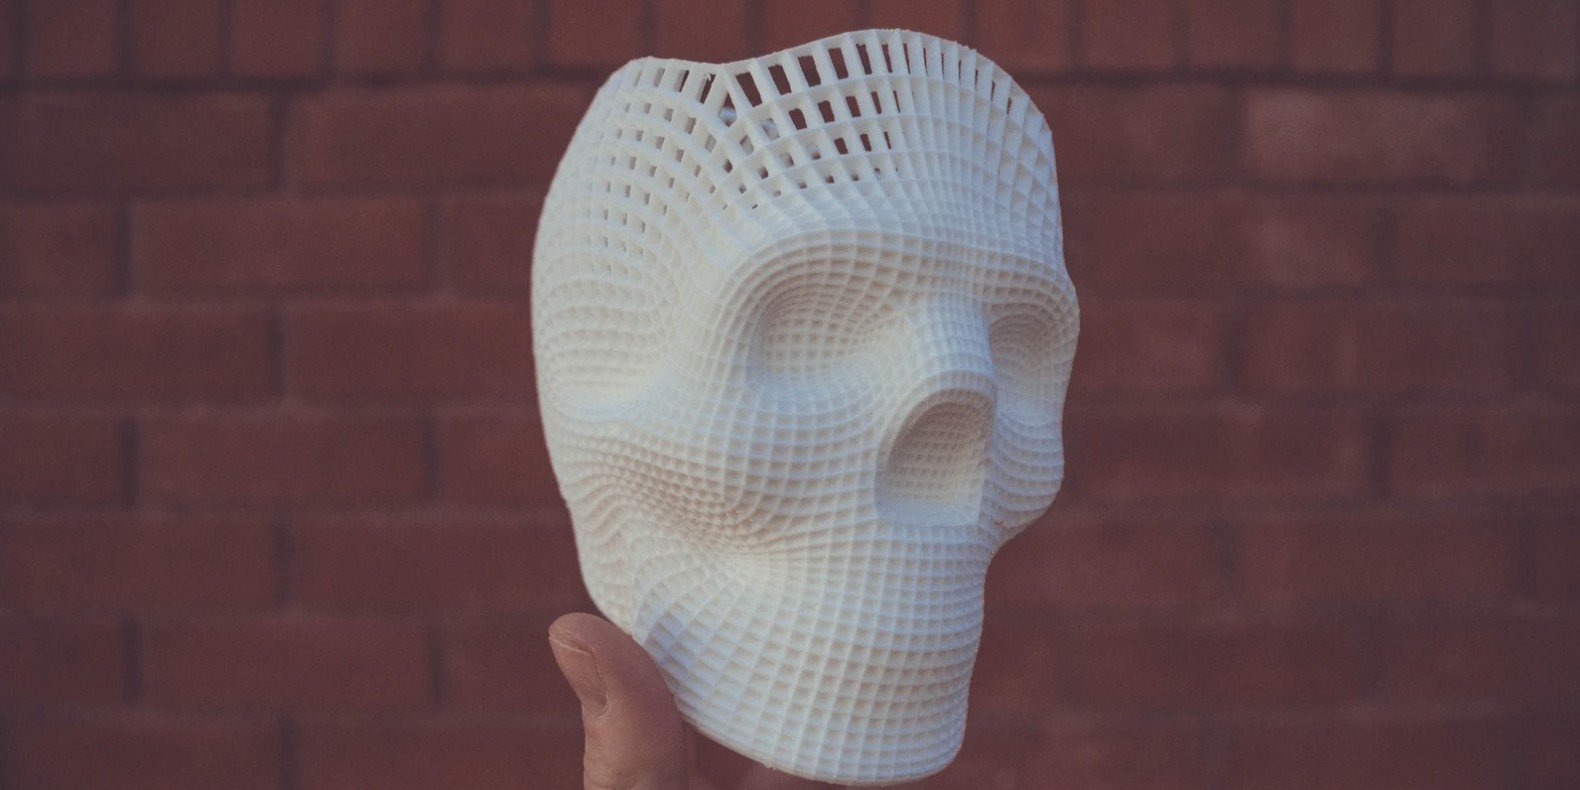 Qualification in 3D Printing: Why Do you Need One and How to Choose the Course